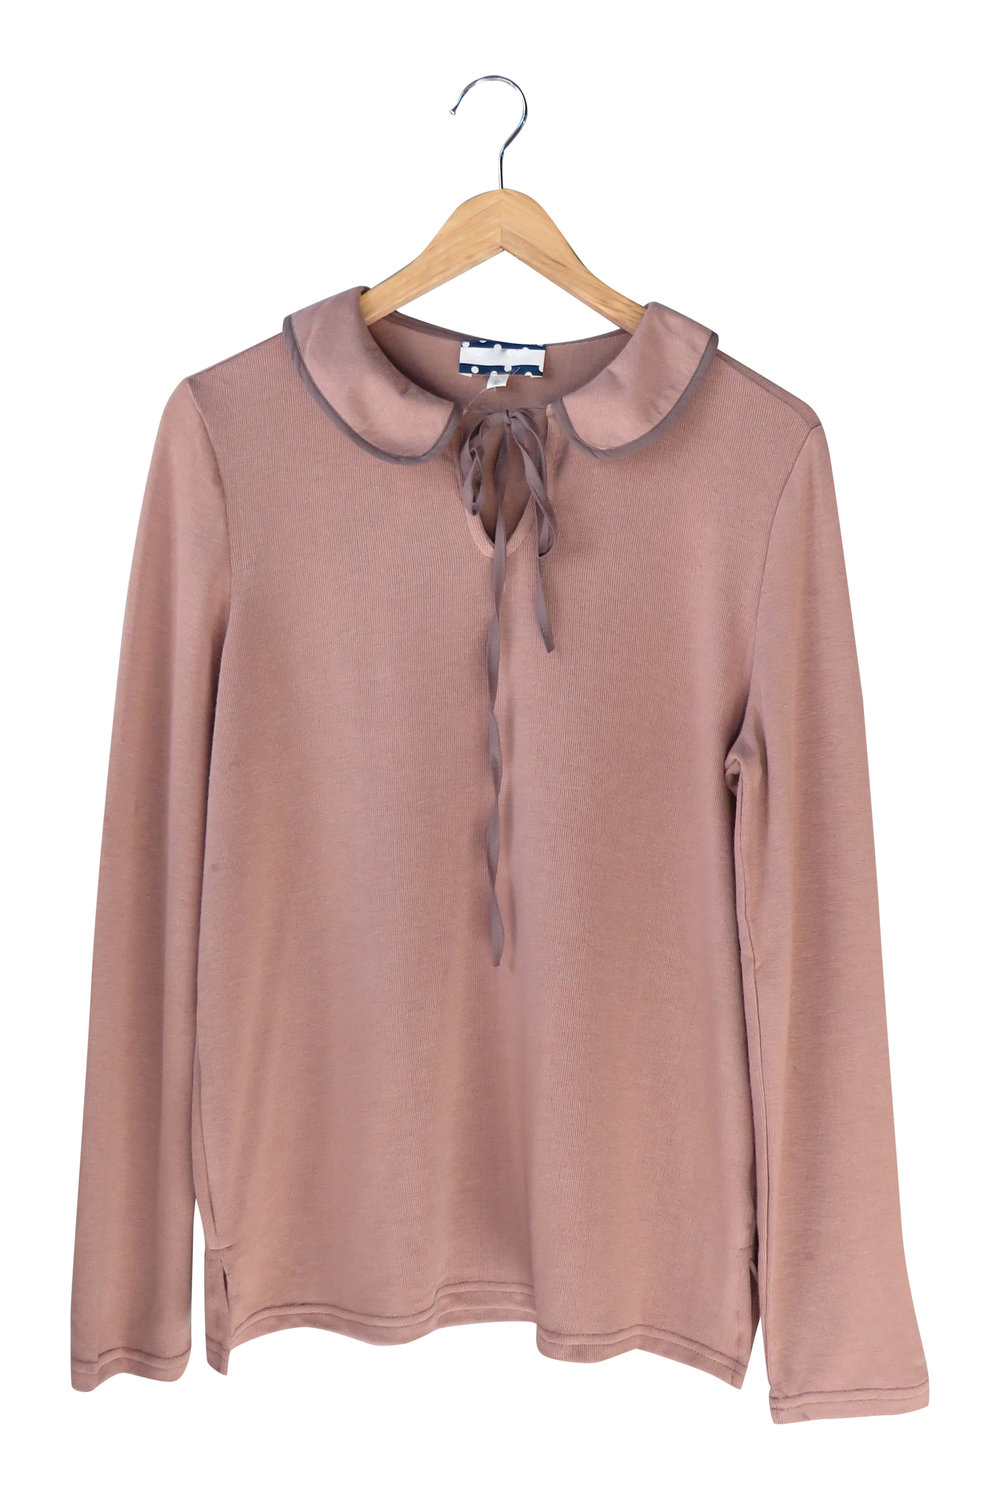 Endeavor Blouse